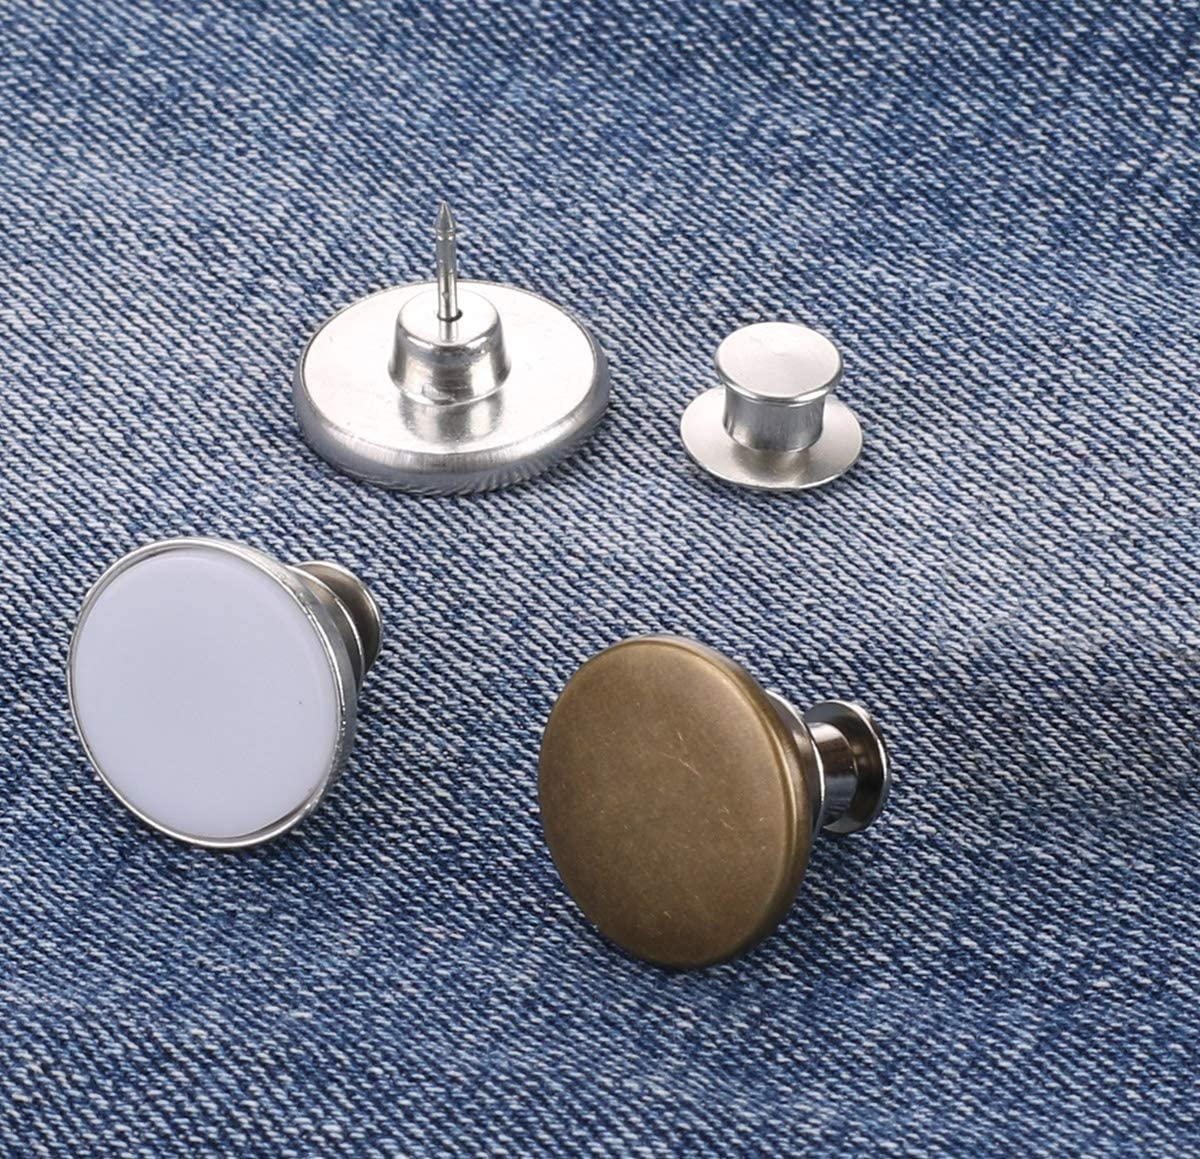 Button Jean Button Pins for Pants Fashion Jeans Swing Crafts DIY Easy to Use and No Tools Require. Button Pins for Jeans